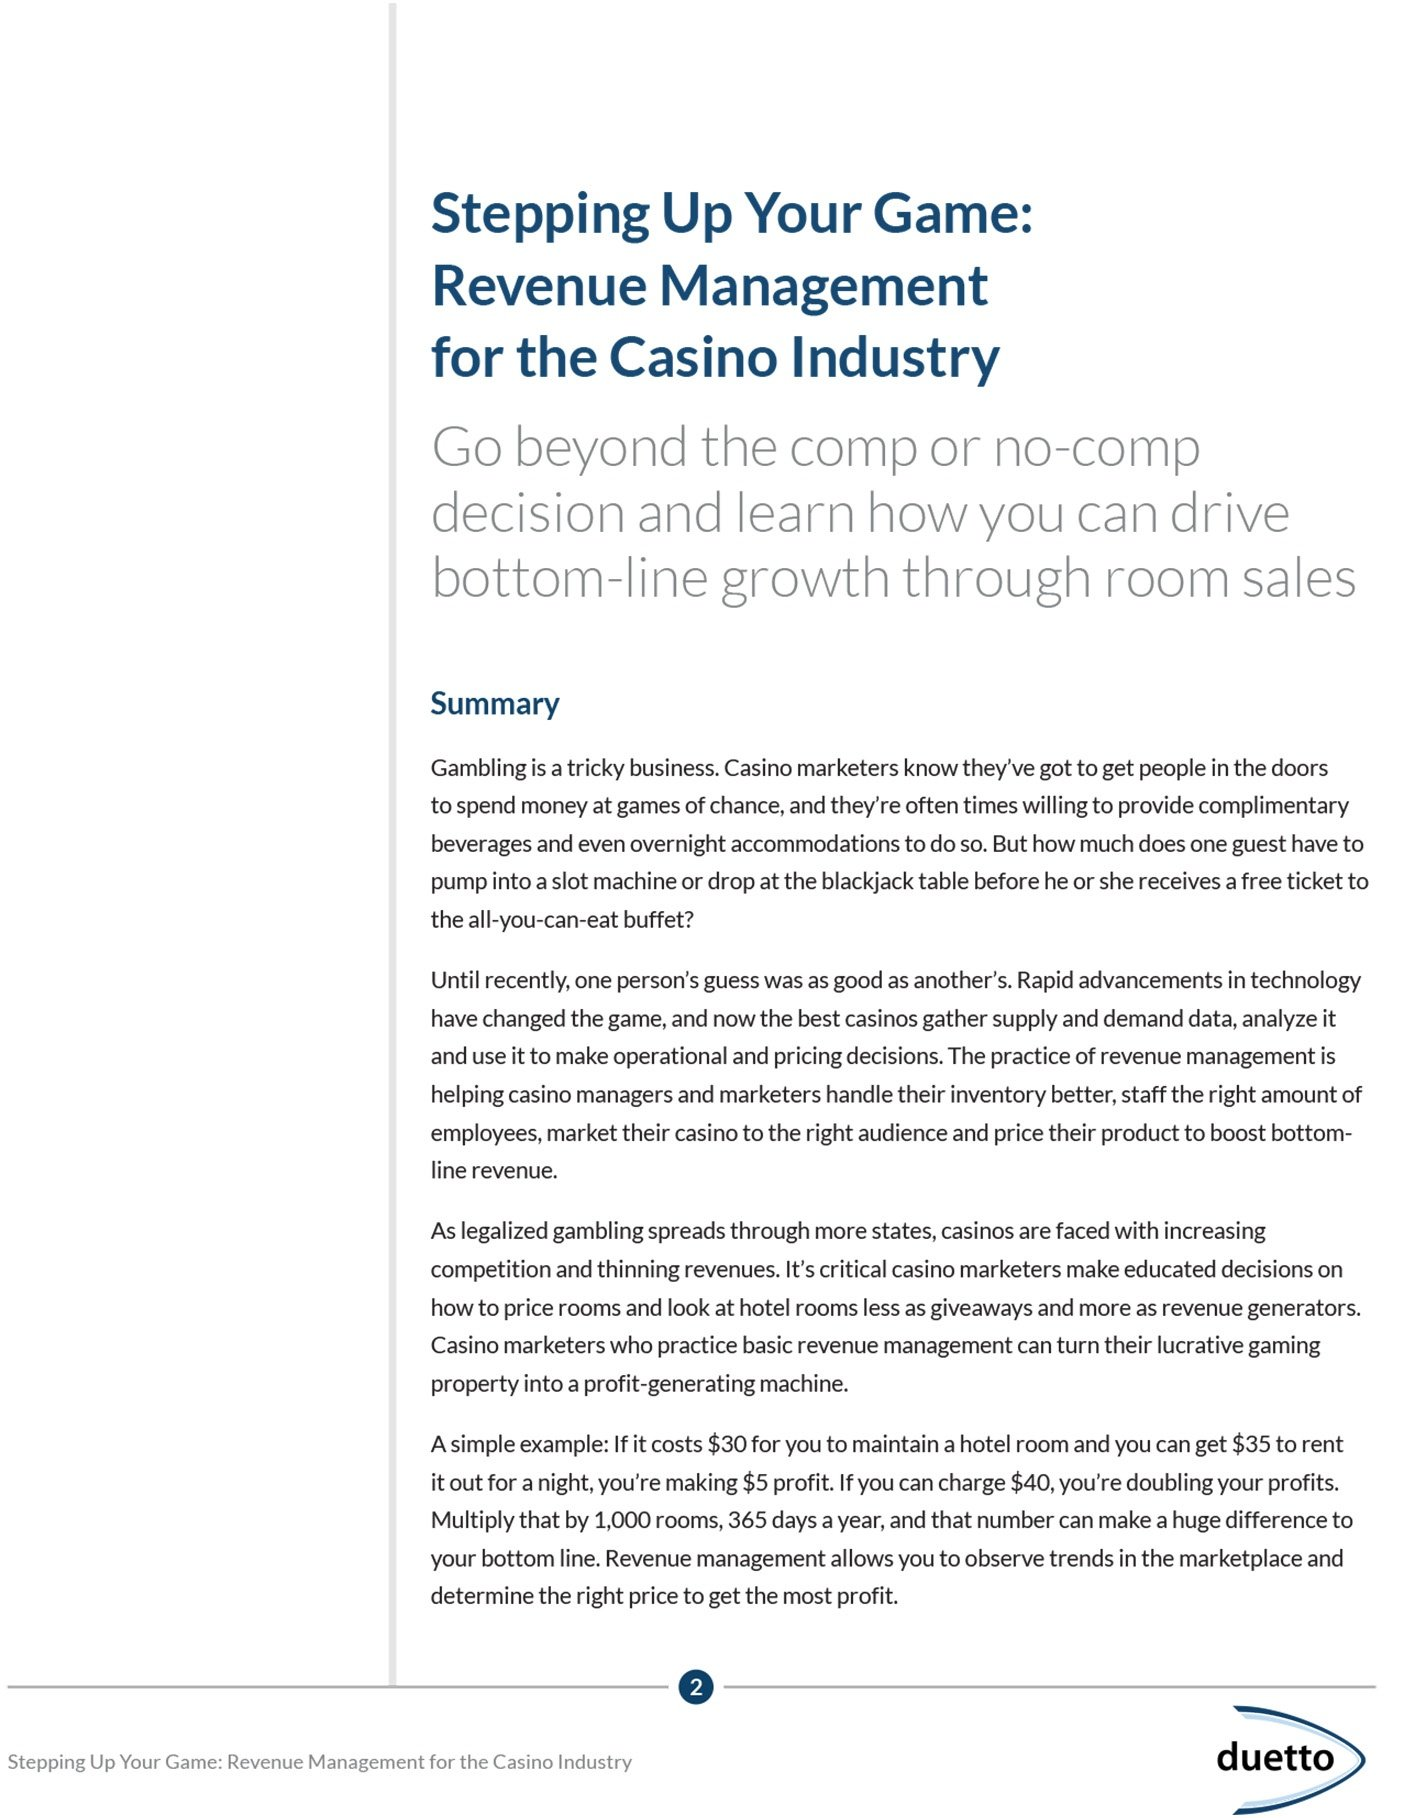 2Stepping-Up-Your-Game-Casino-Revenue-Management-2.jpg